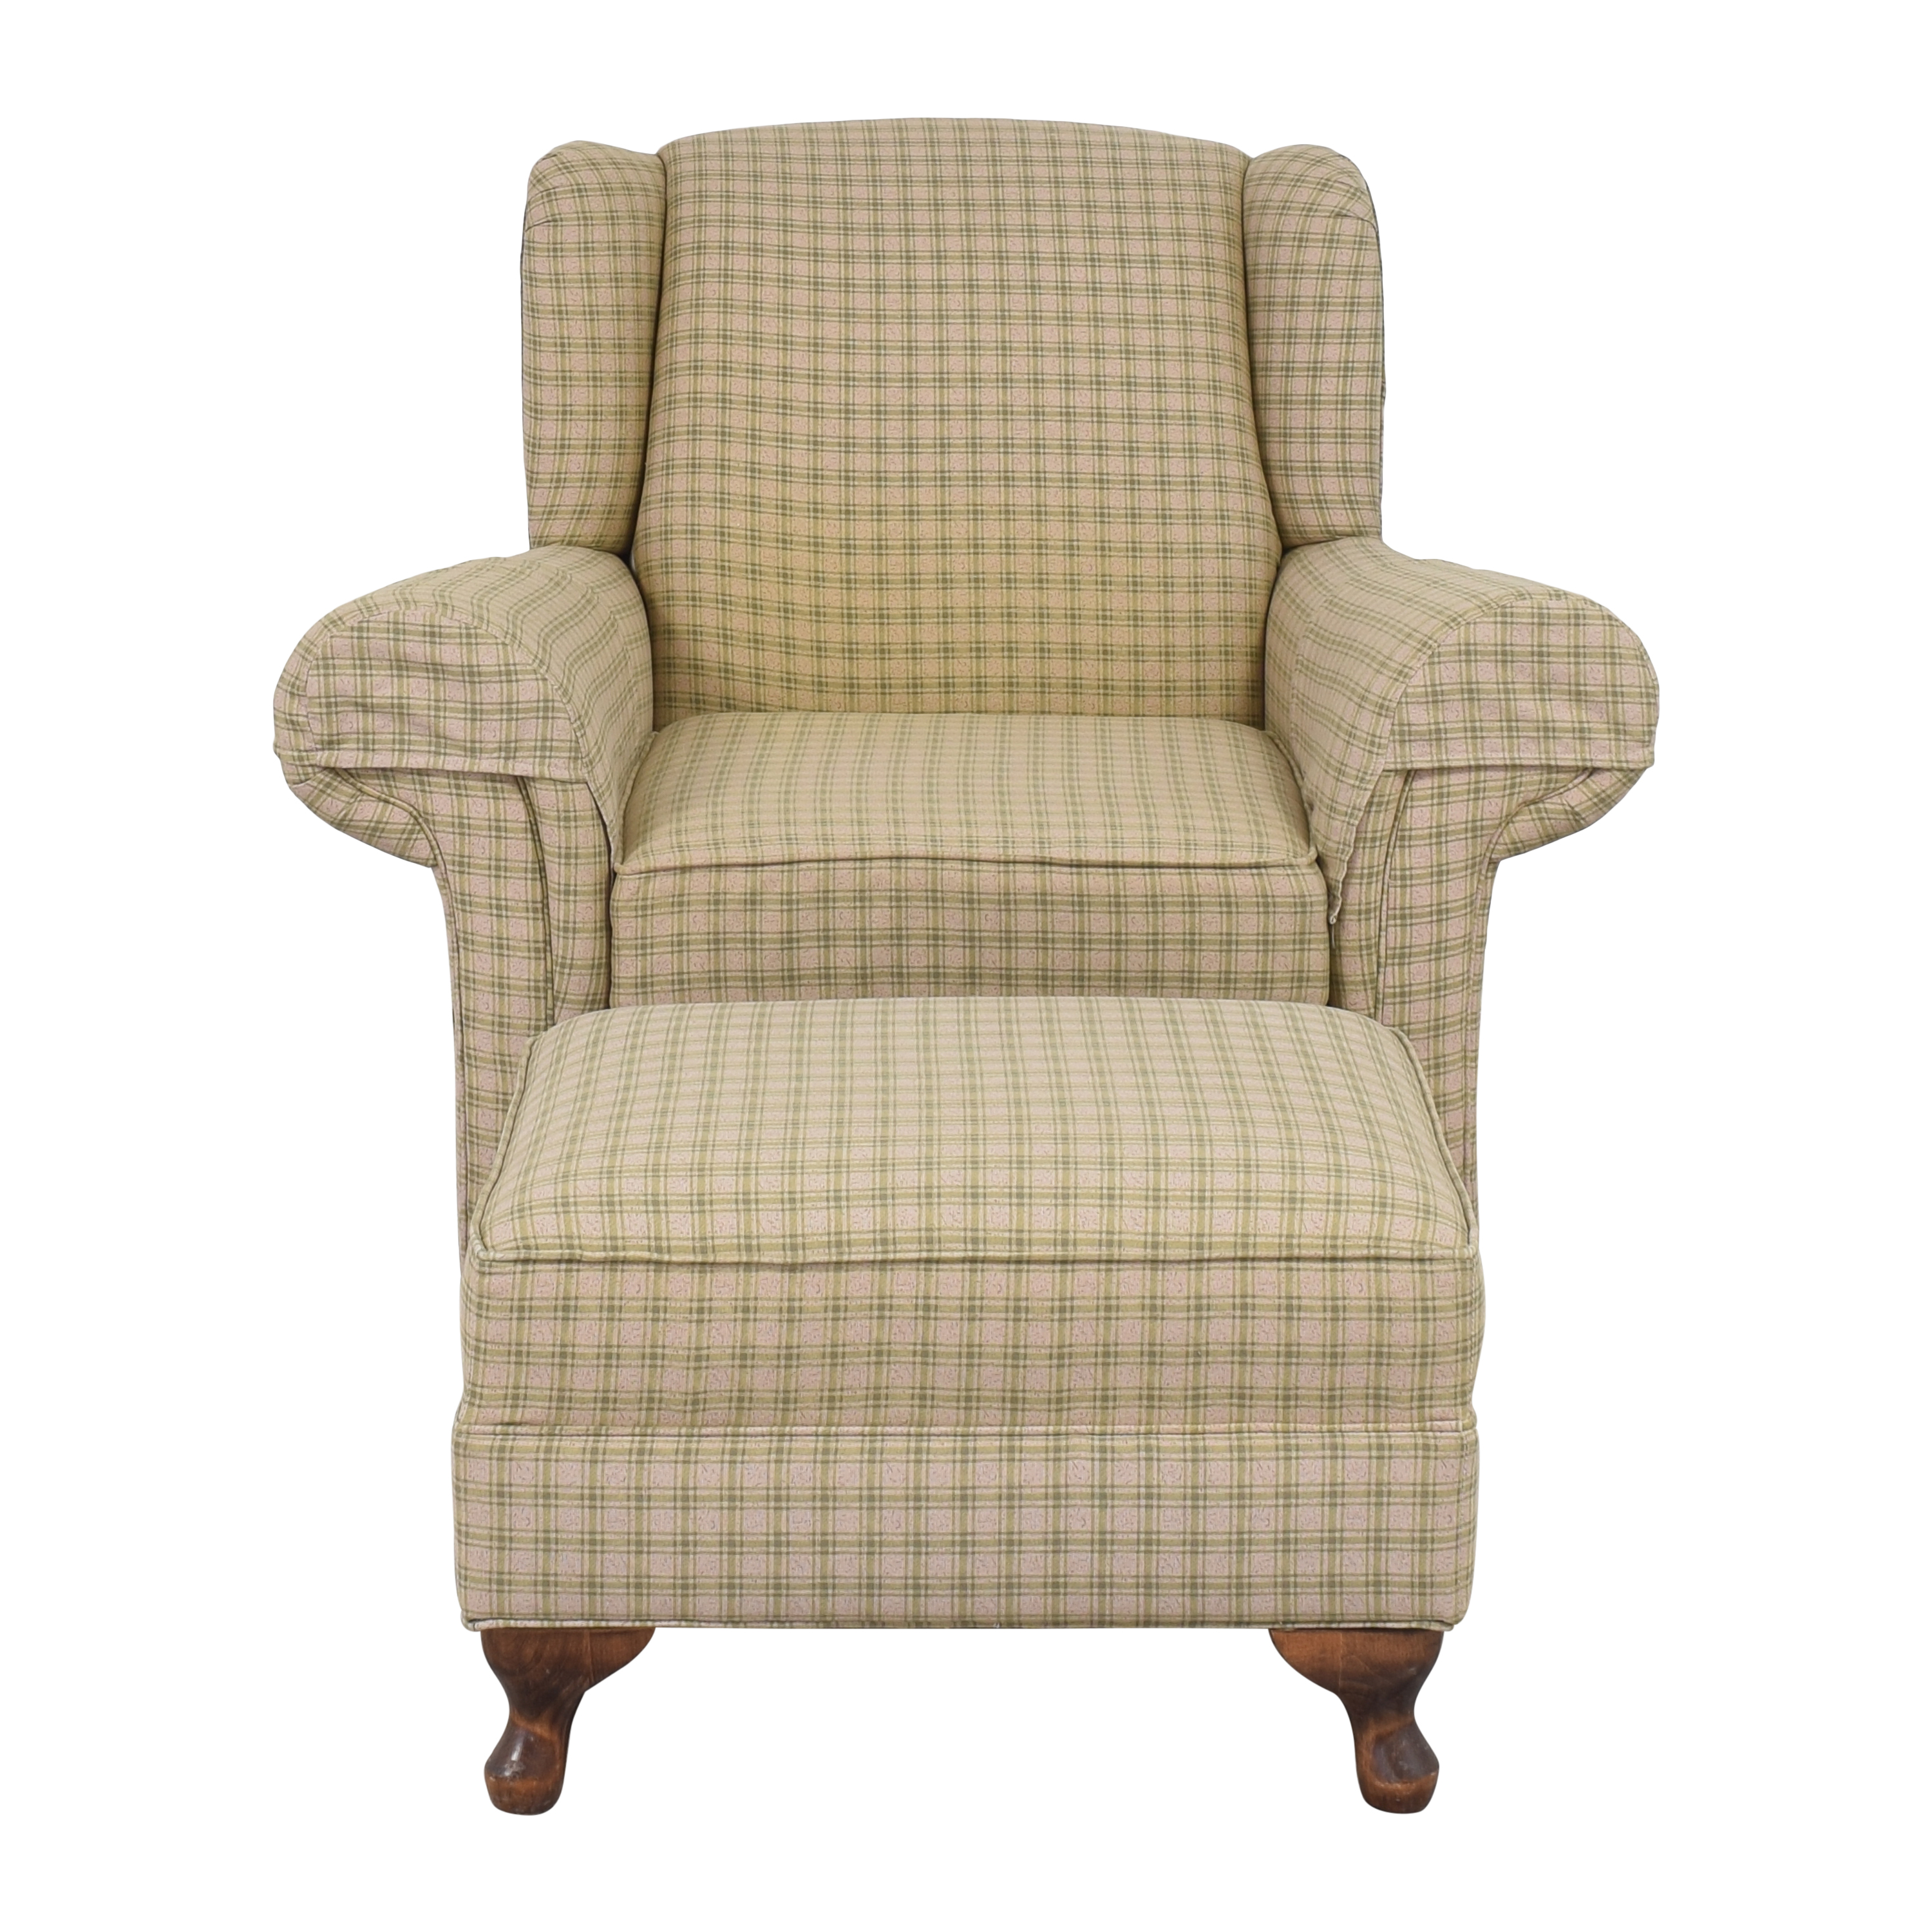 Roll Arm Chair with Ottoman for sale